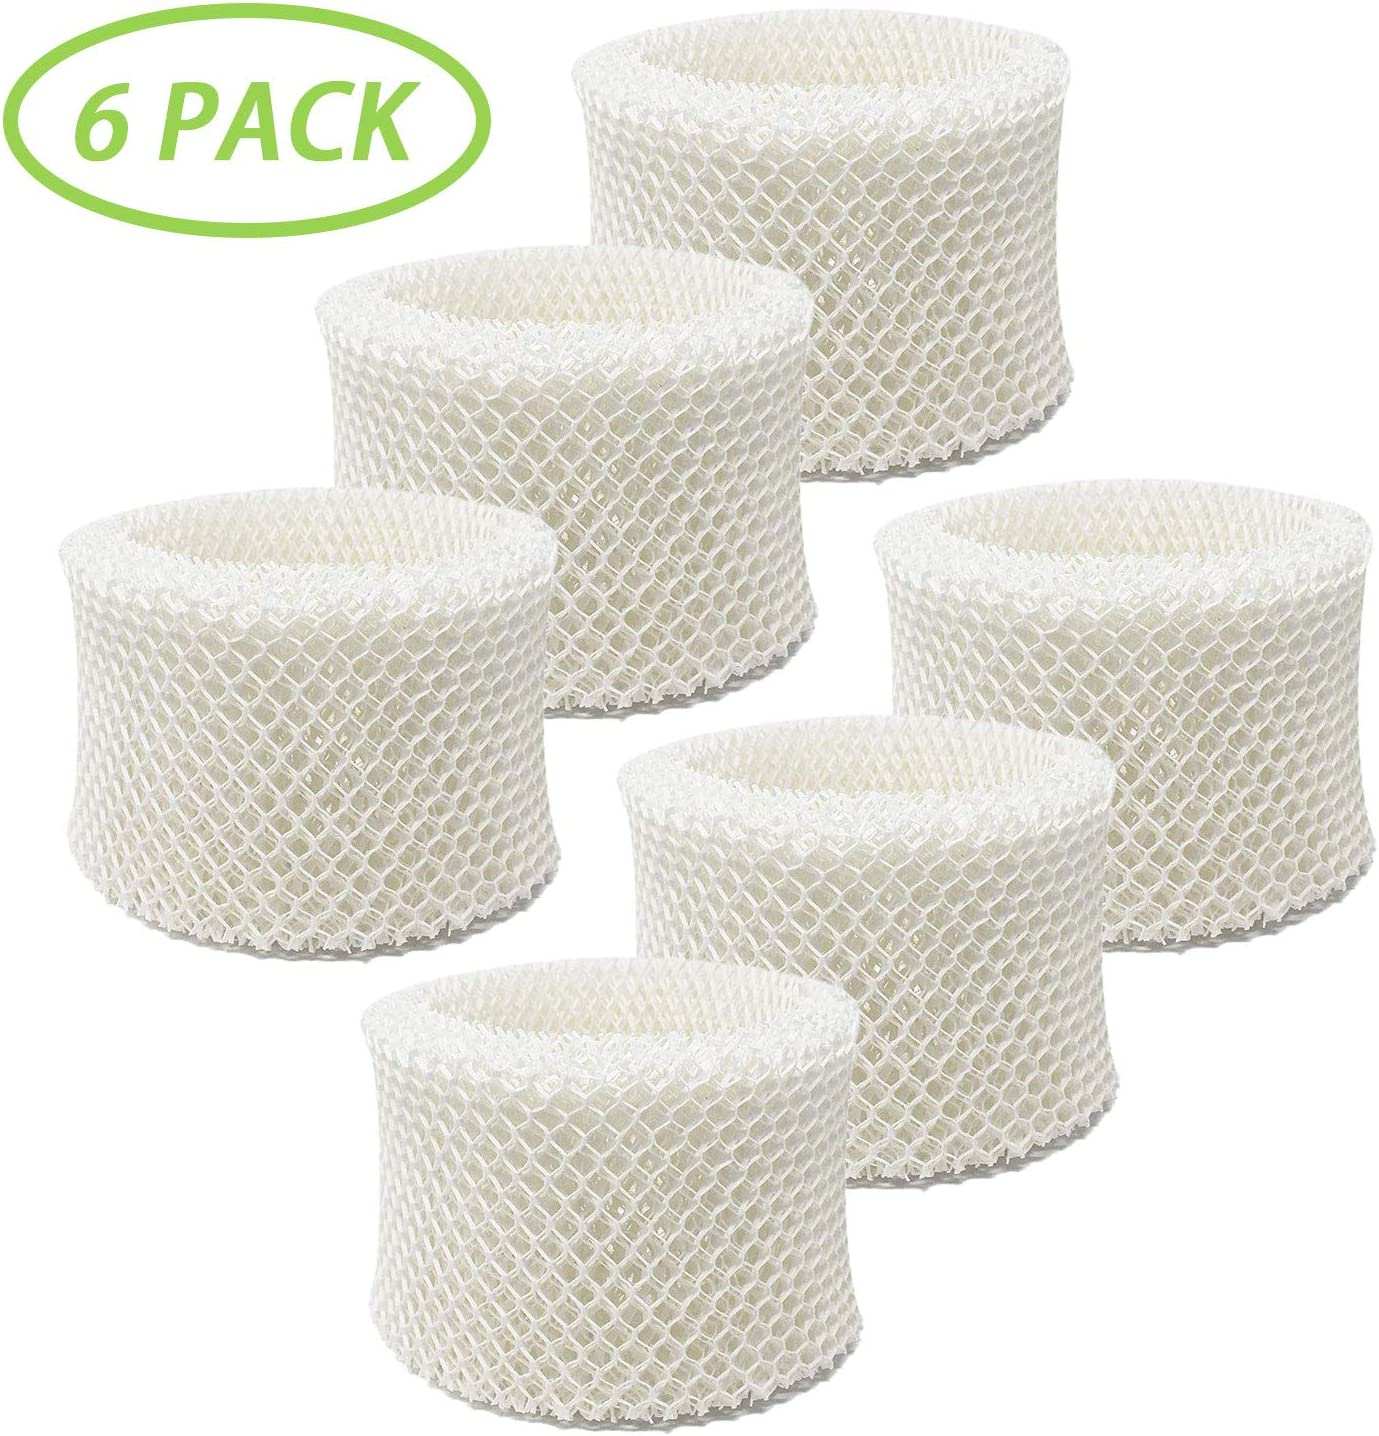 IOYIJOI Humidifier Filters Replacement for Honeywell Filter